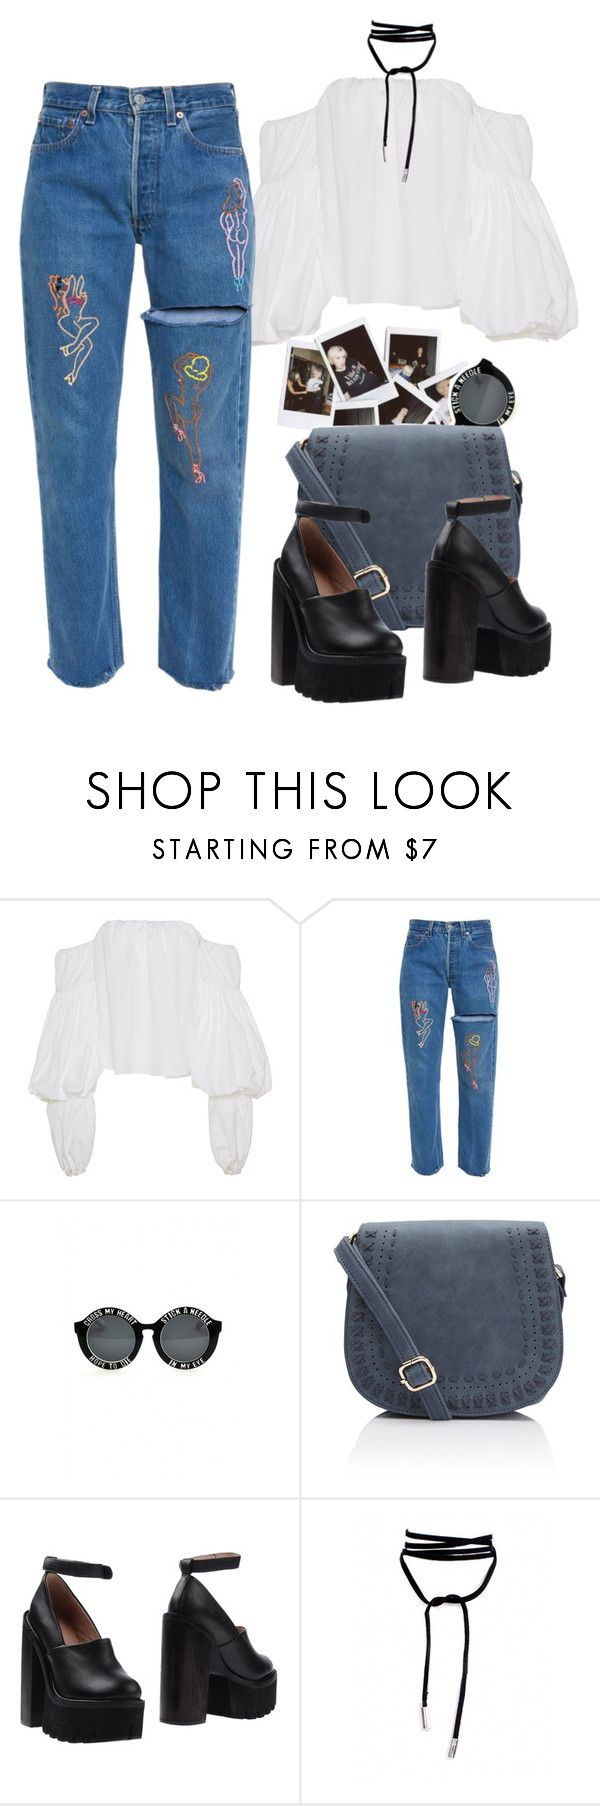 """sweeter than sweet"" by marsmolly ❤ liked on Polyvore featuring Johanna Ortiz, Nasty Gal and Jeffrey Campbell"